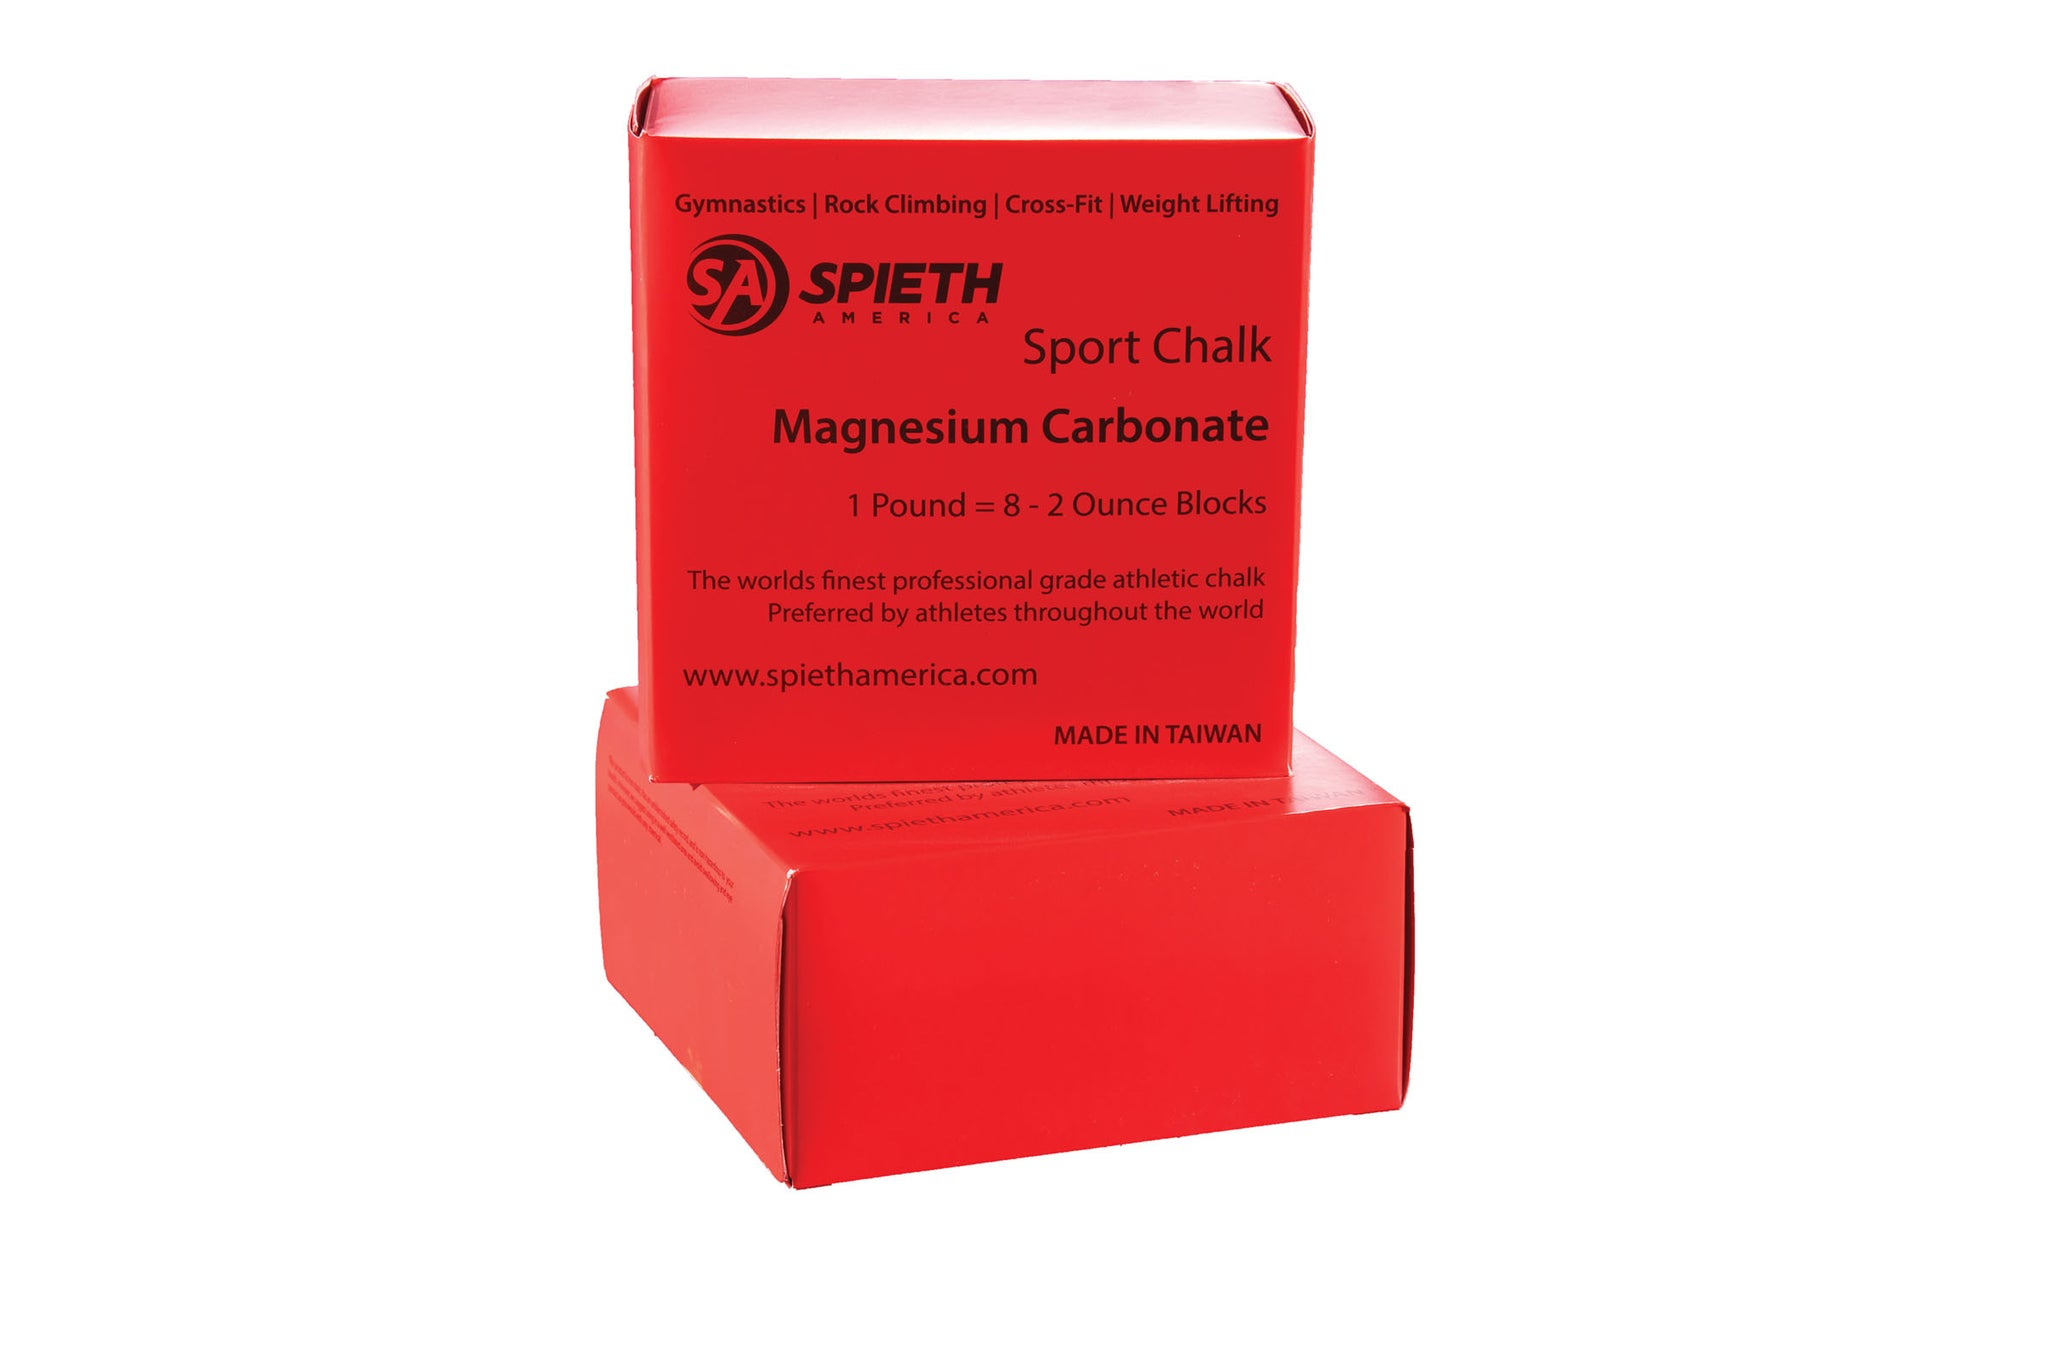 Spieth America Magnesium Carbonate Gym Chalk